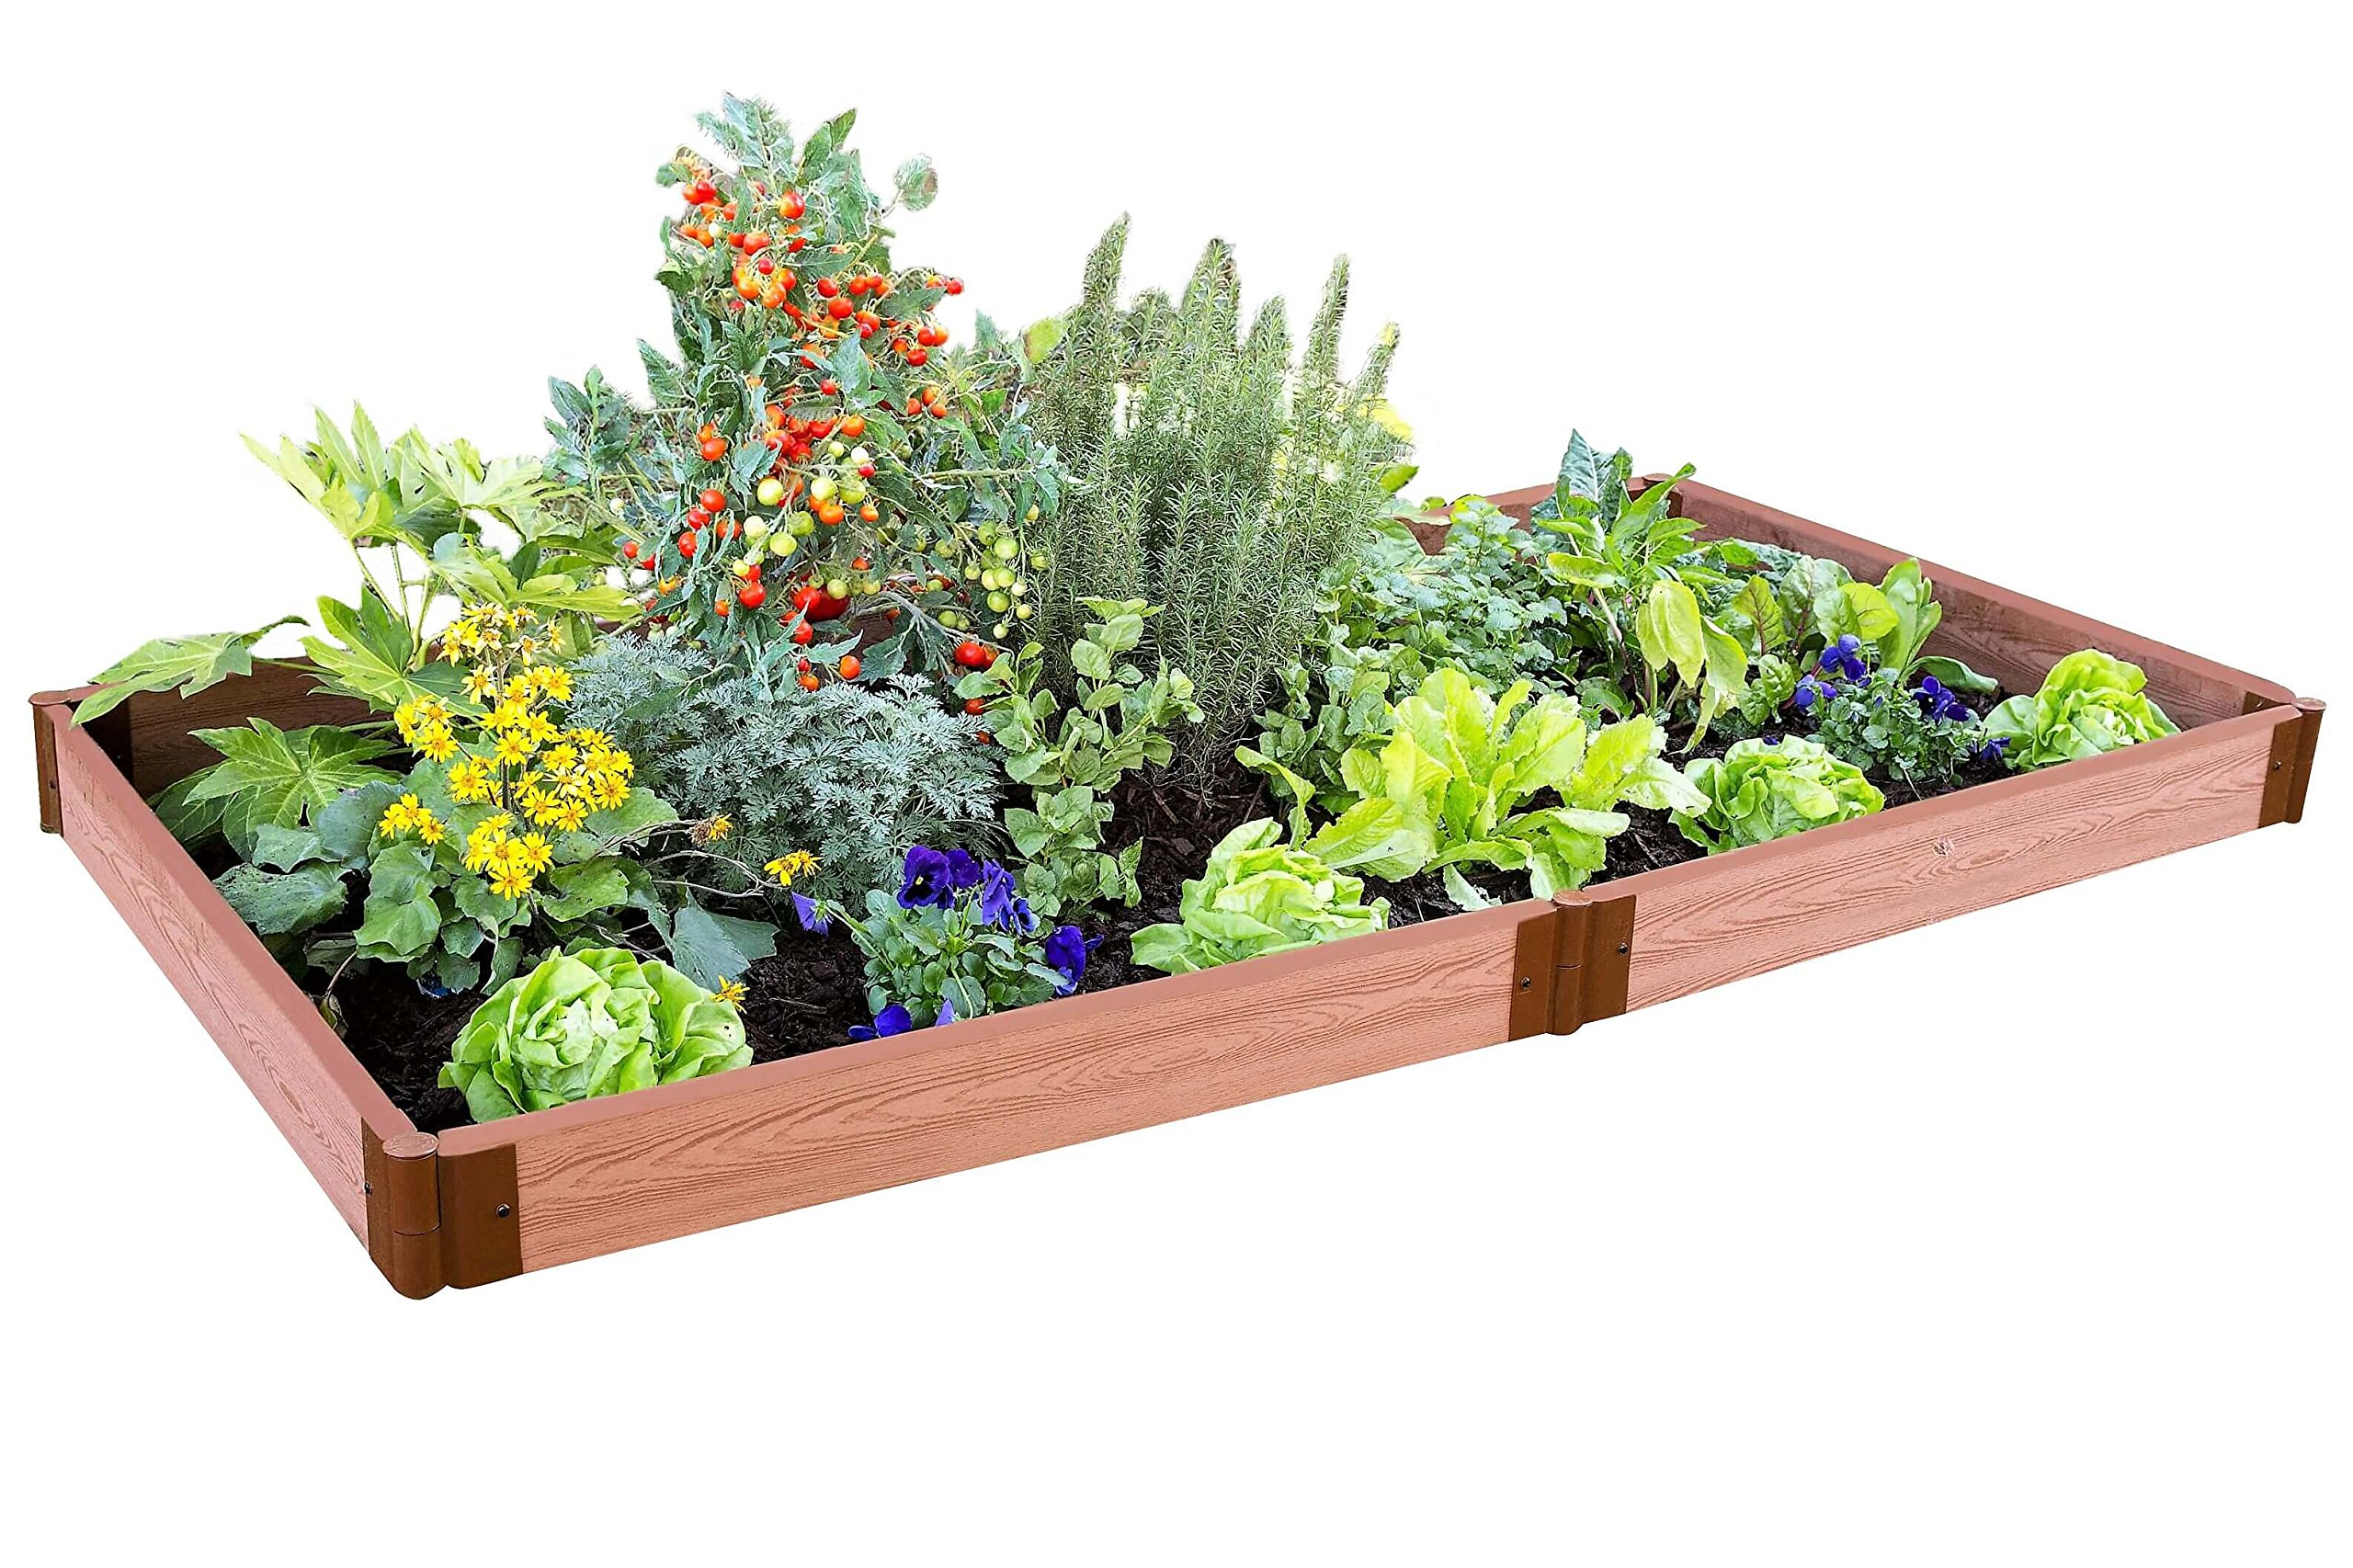 Frame It All Two Inch Series 4' x 8' x 5.5'', Composite Raised Garden Bed Kit